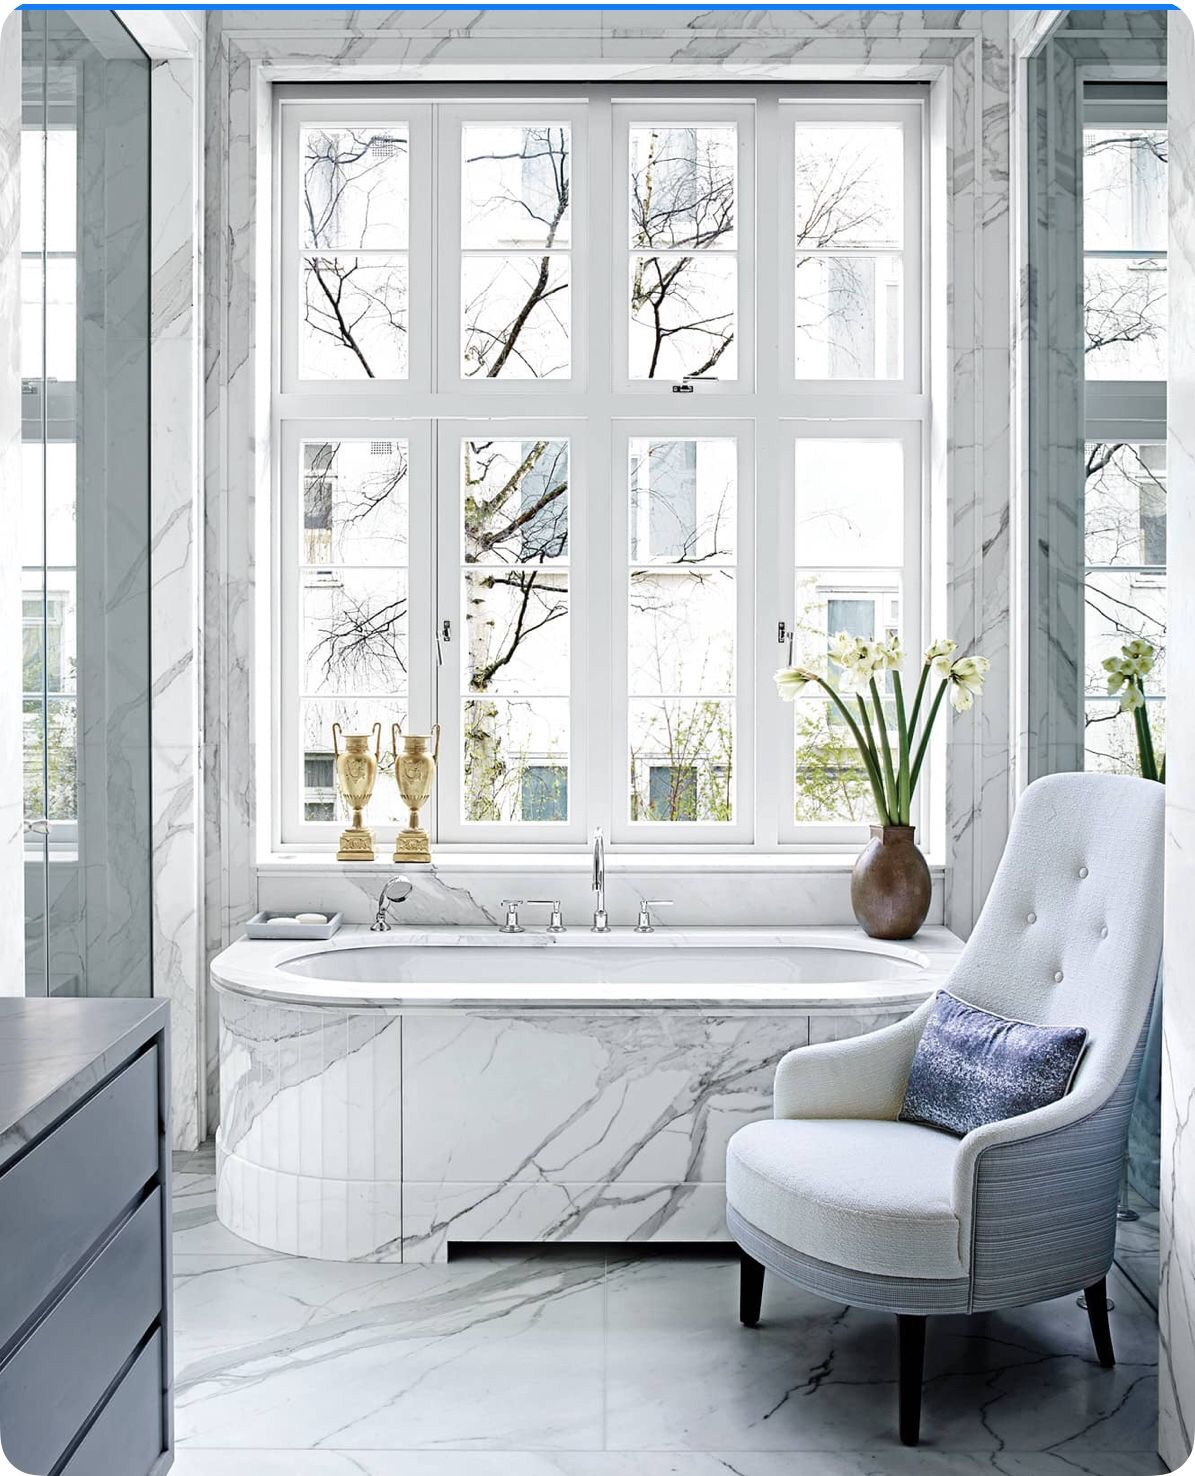 Master bathroom swathed in marble